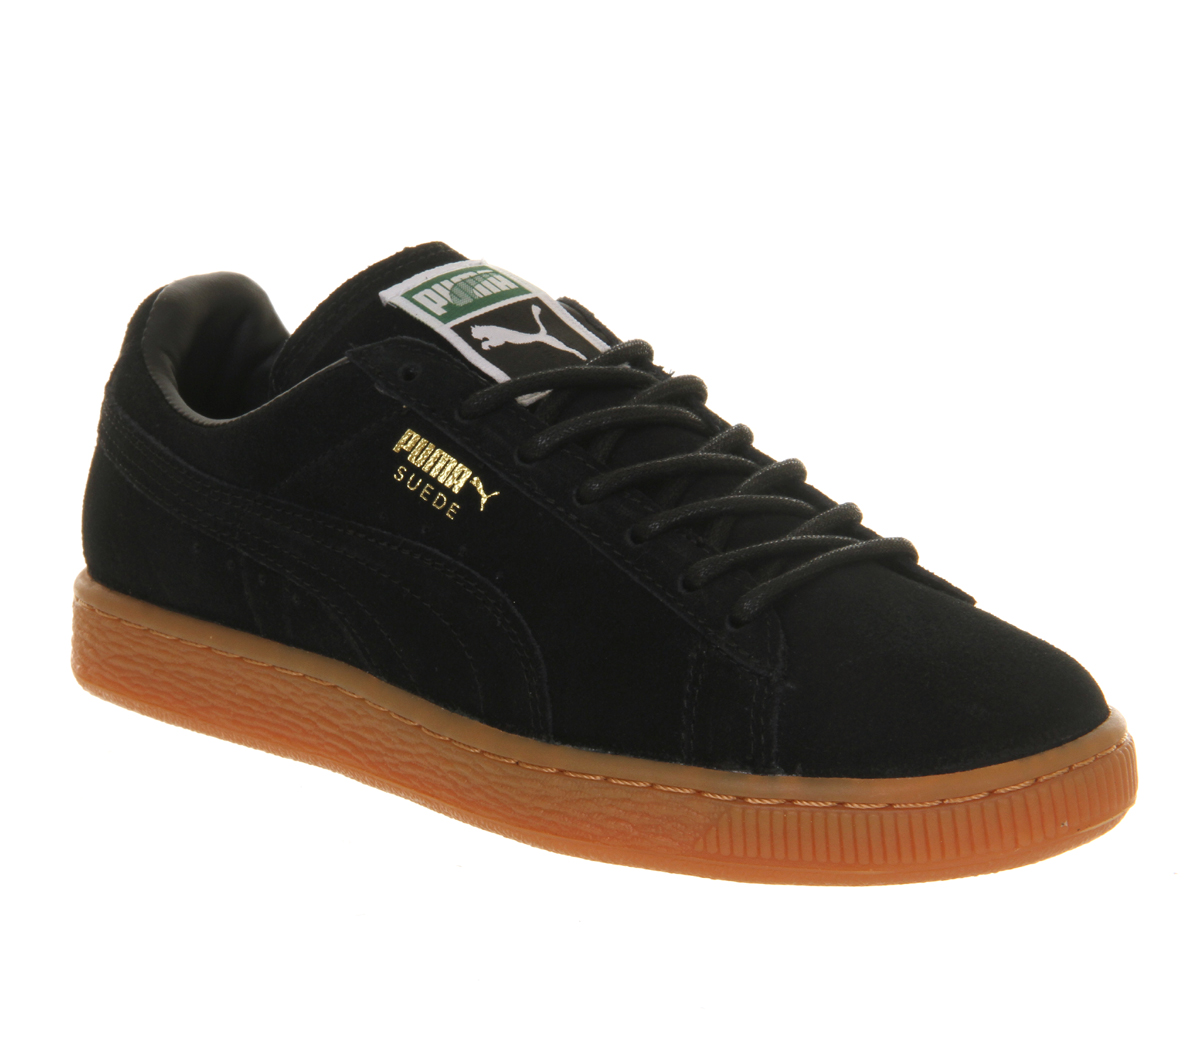 puma suede classic in black for men lyst. Black Bedroom Furniture Sets. Home Design Ideas